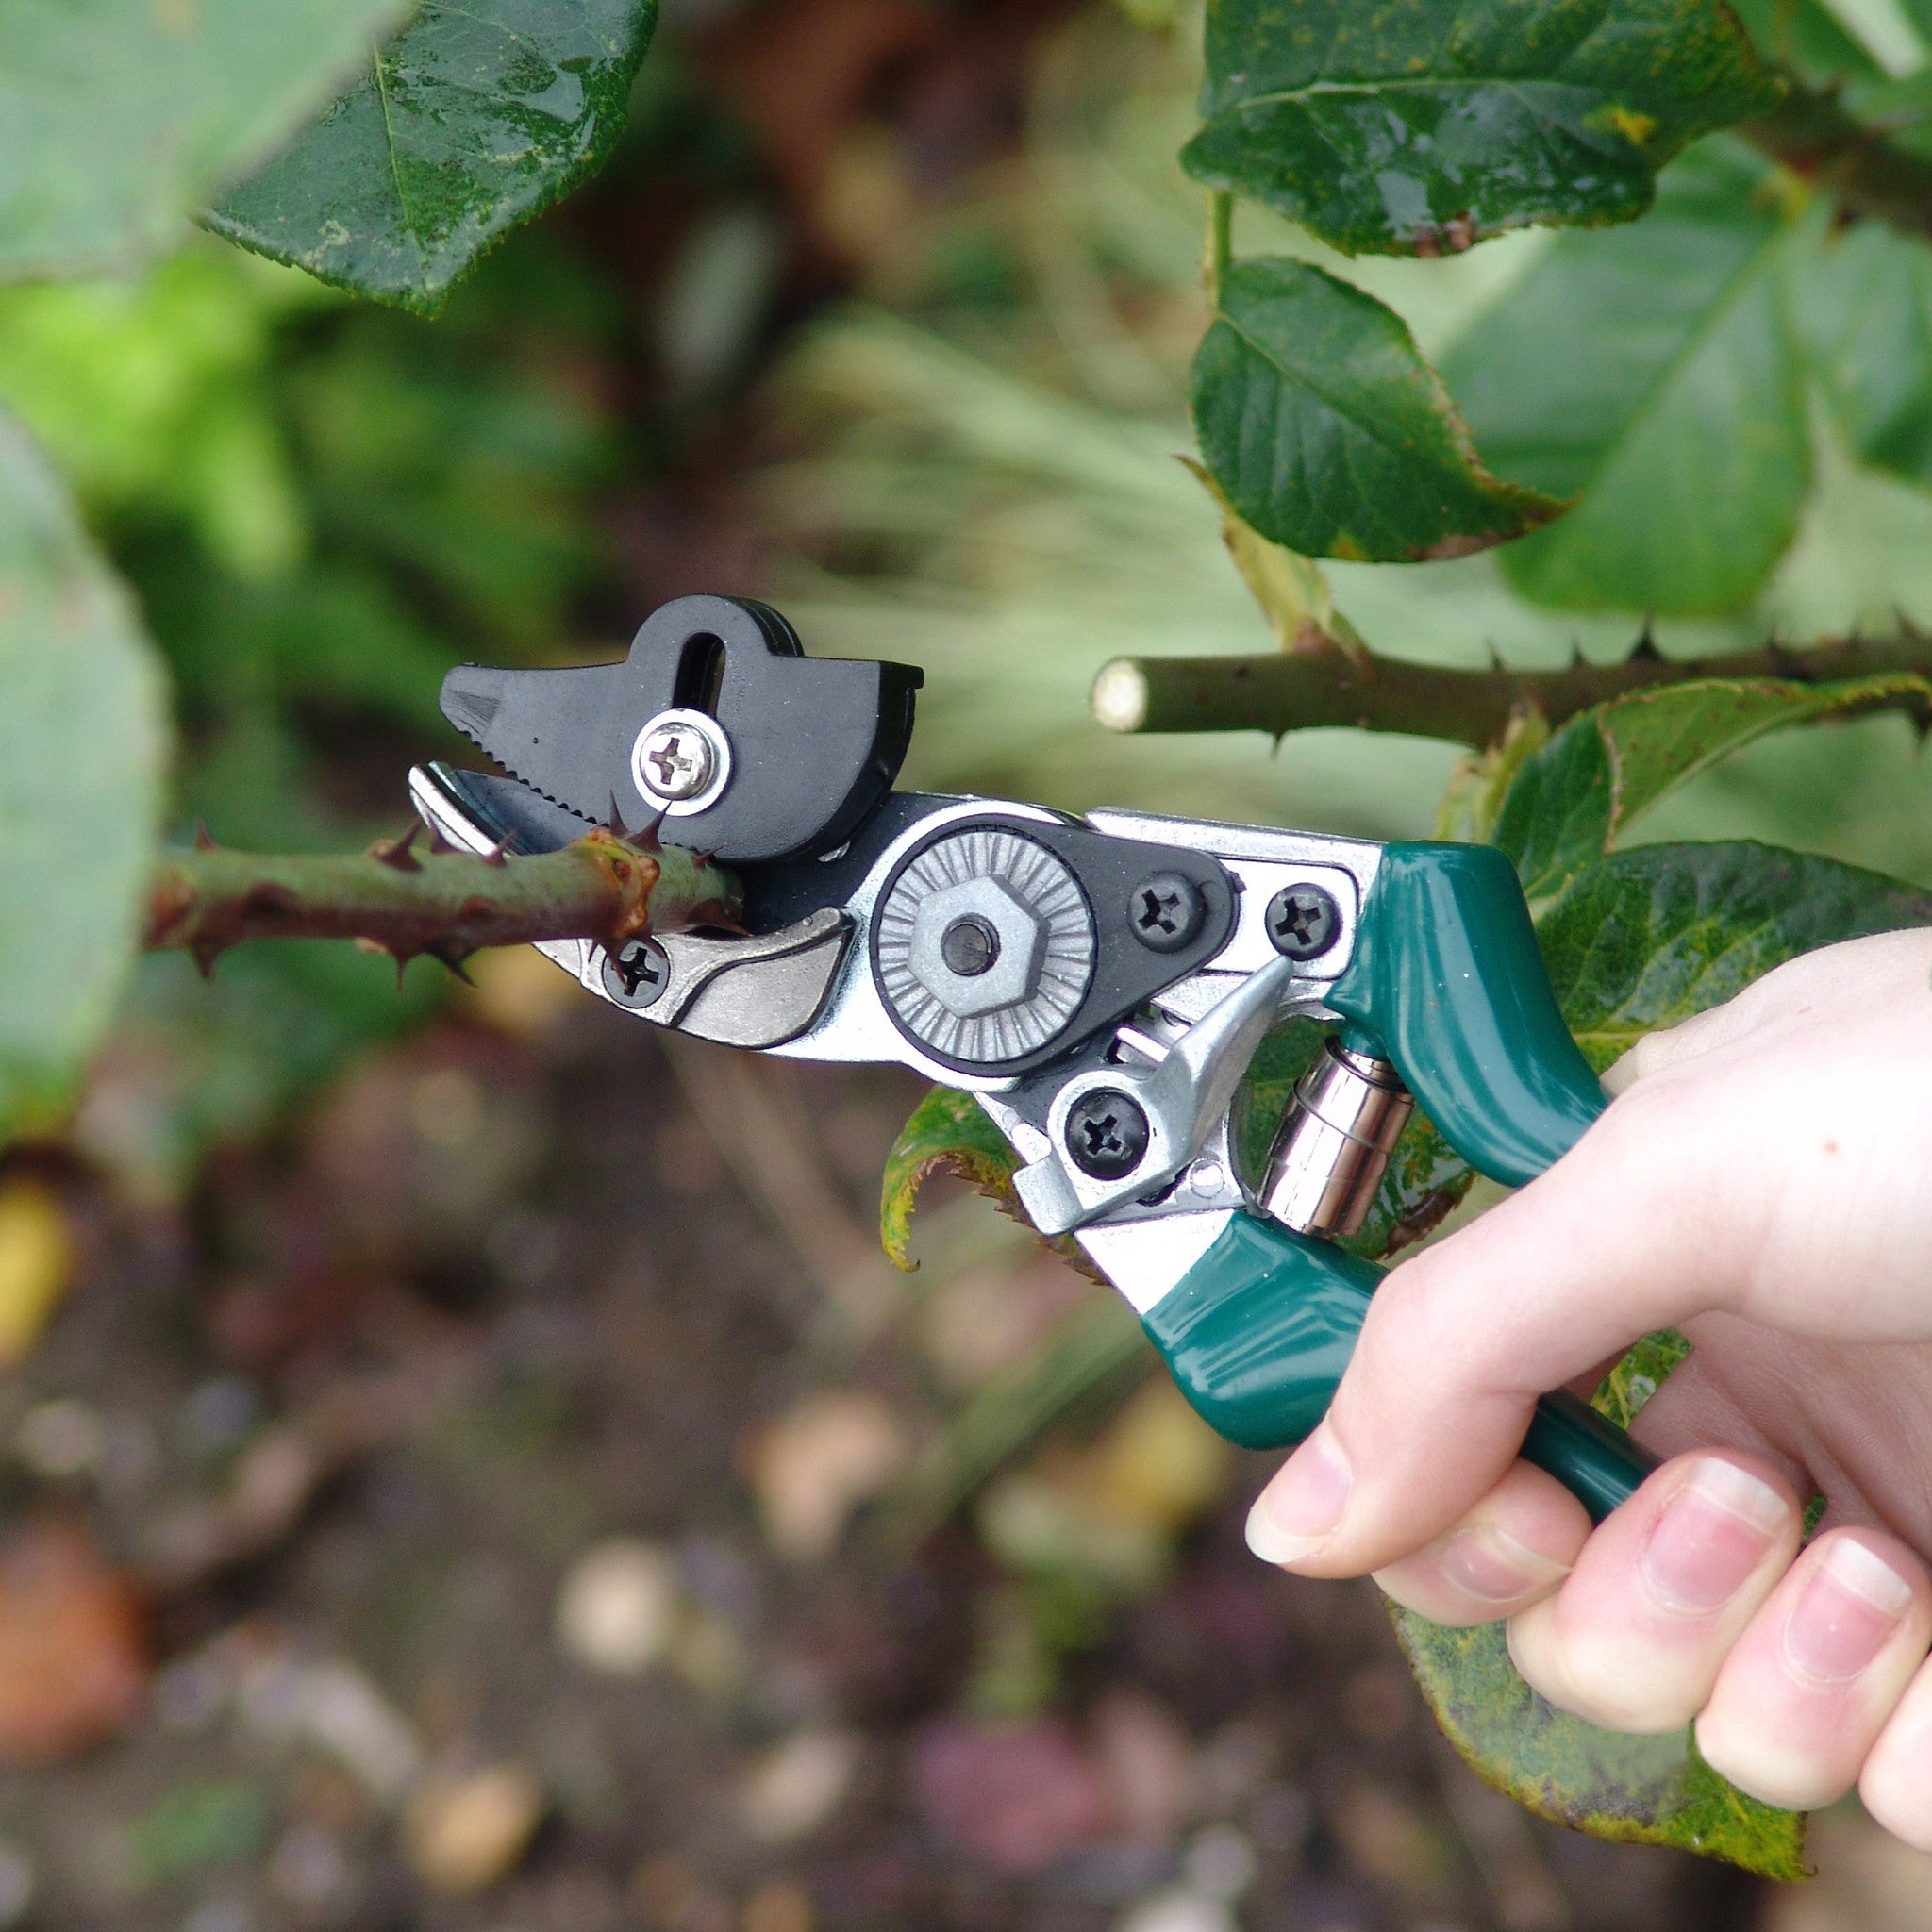 Rose Pruner - The Potting Shed Garden Tools